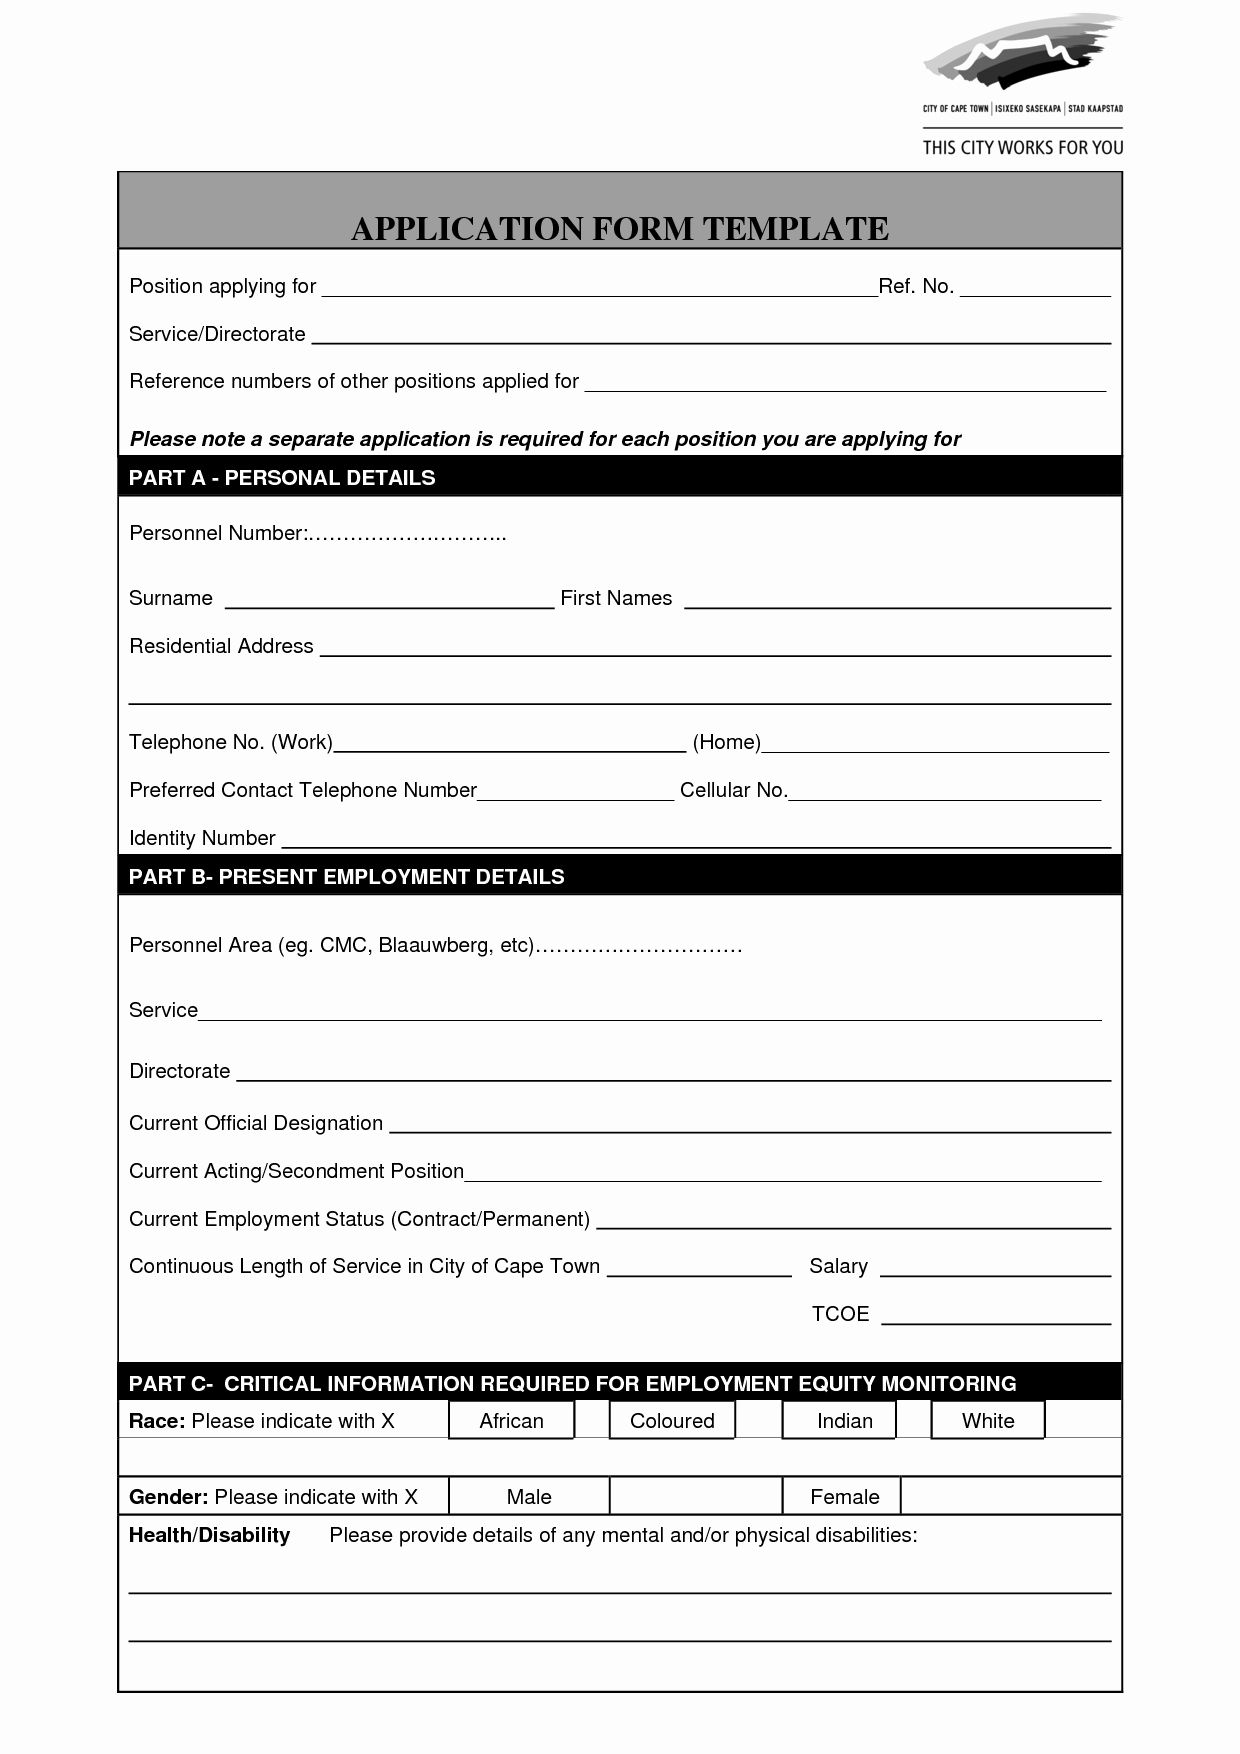 Application form Template Word Best Of Index Of Cdn 3 1993 630